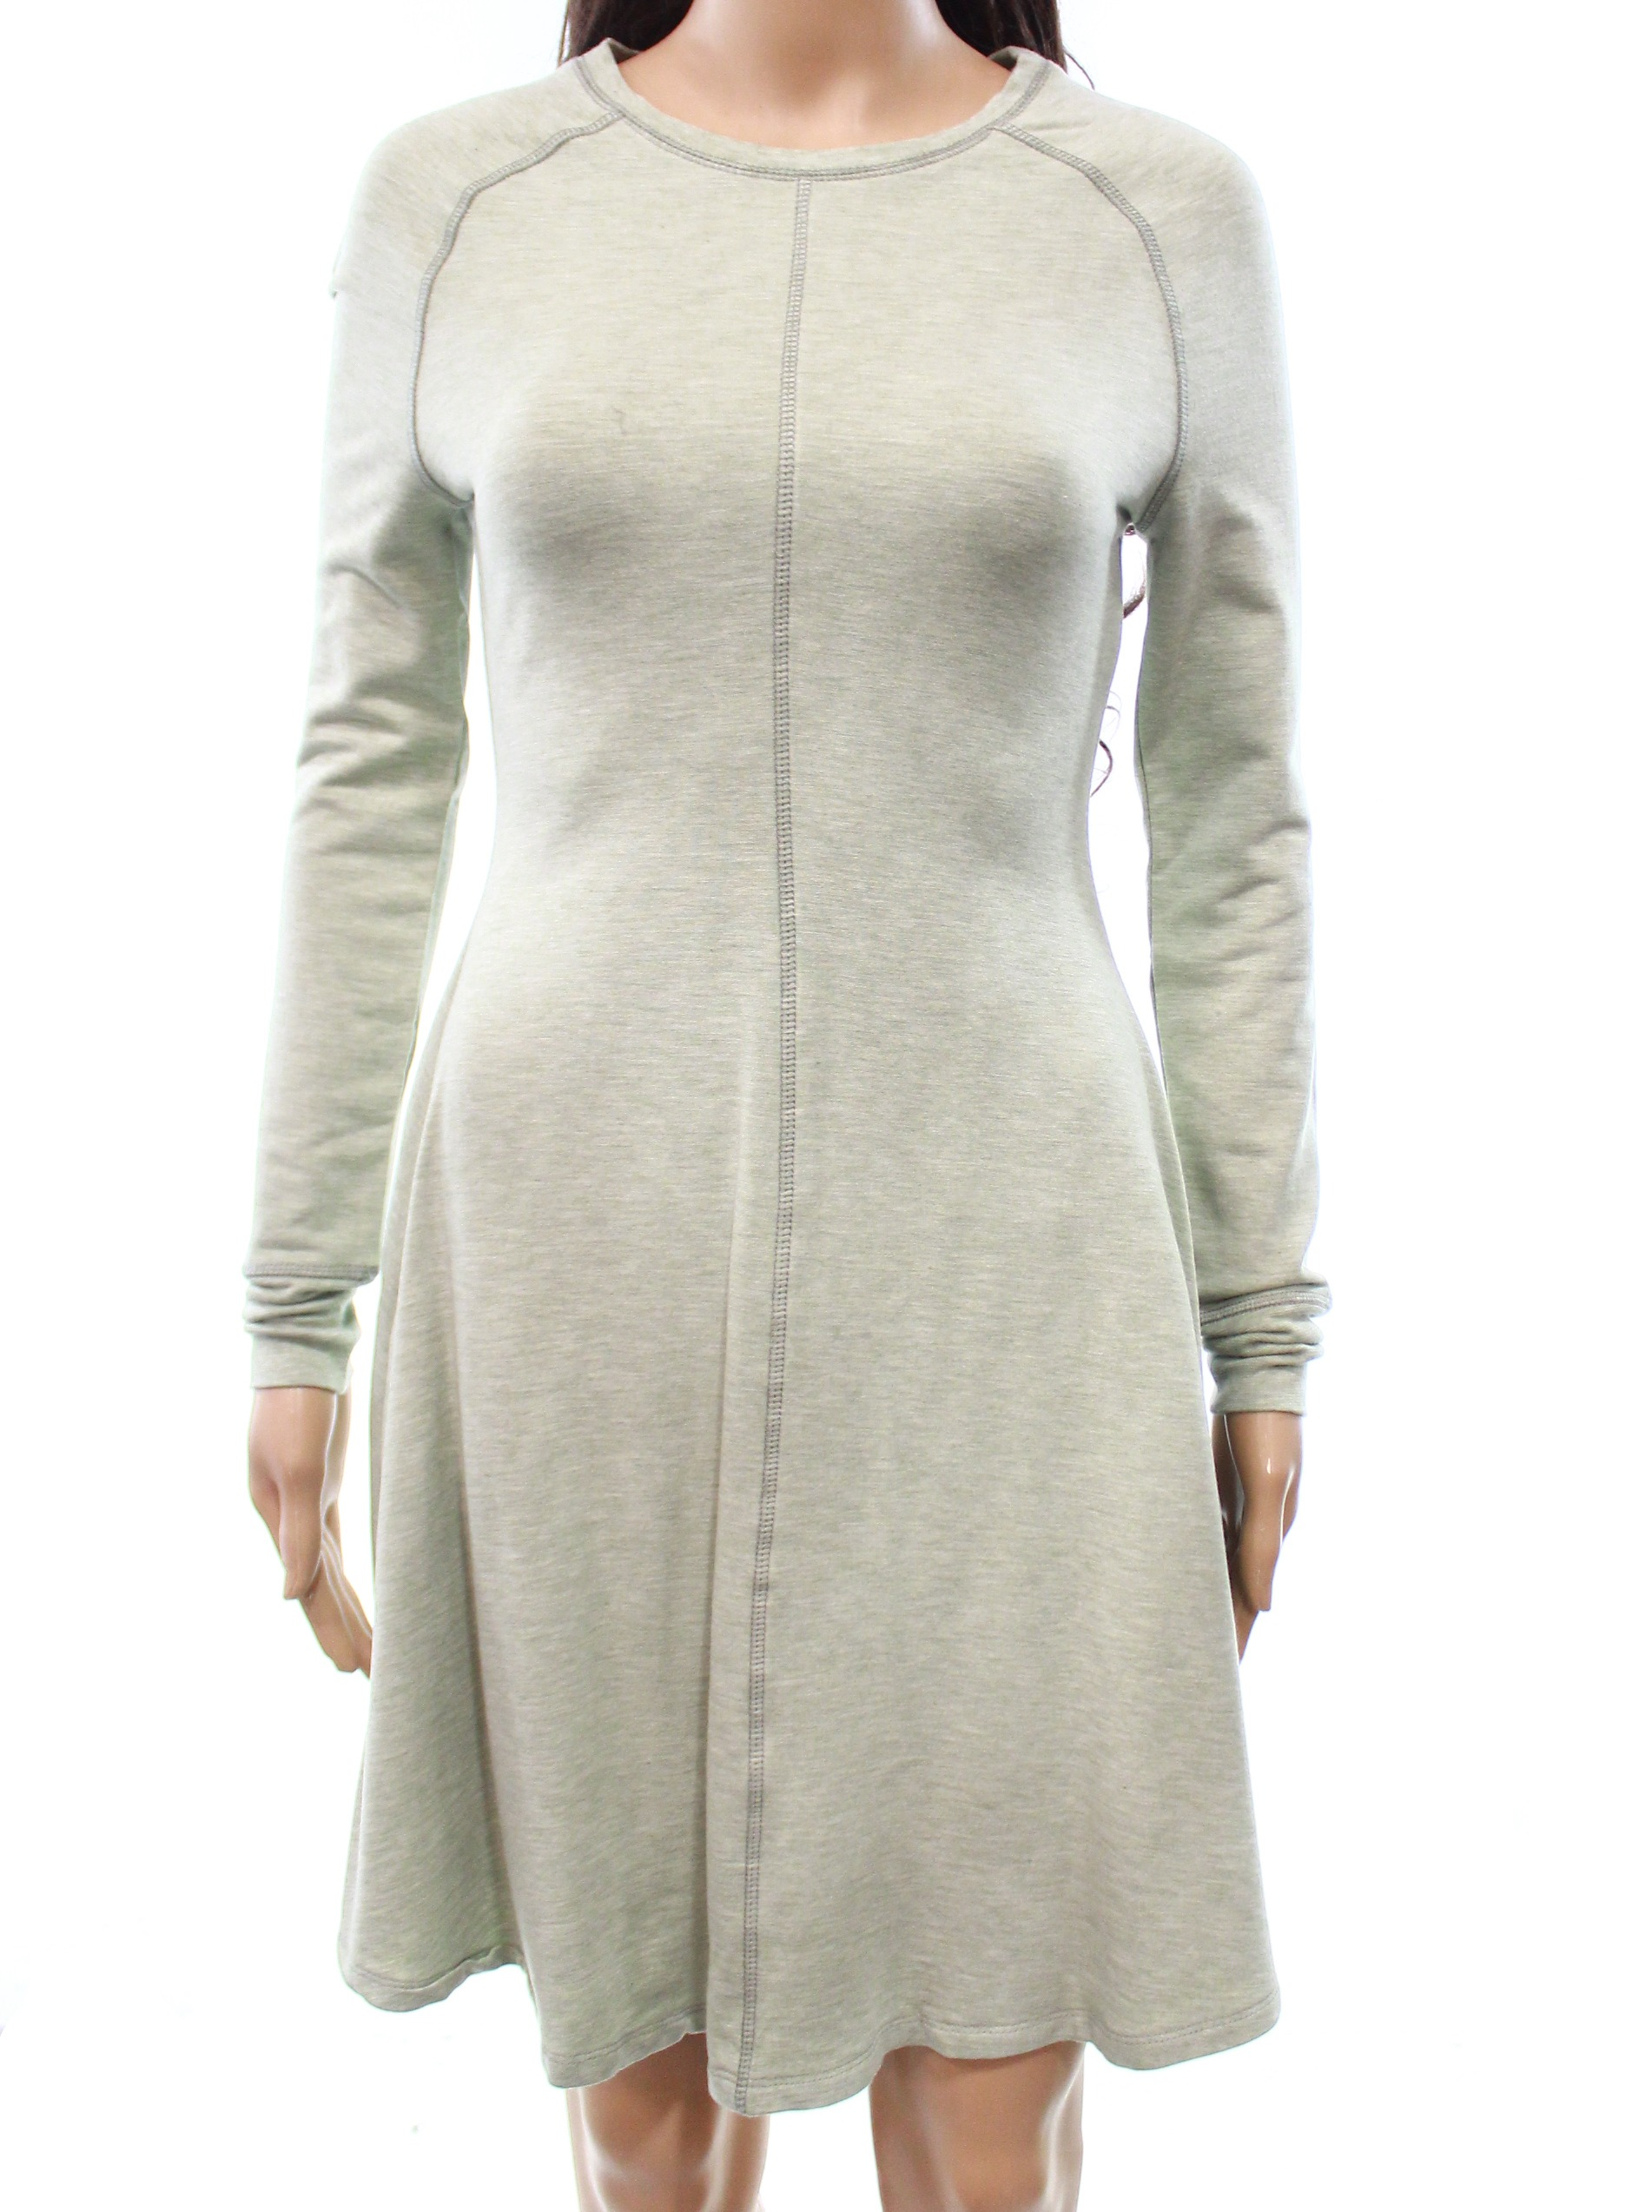 Philosophy NEW Green Women's Size Small S Contrast Stitch Sweater Dress